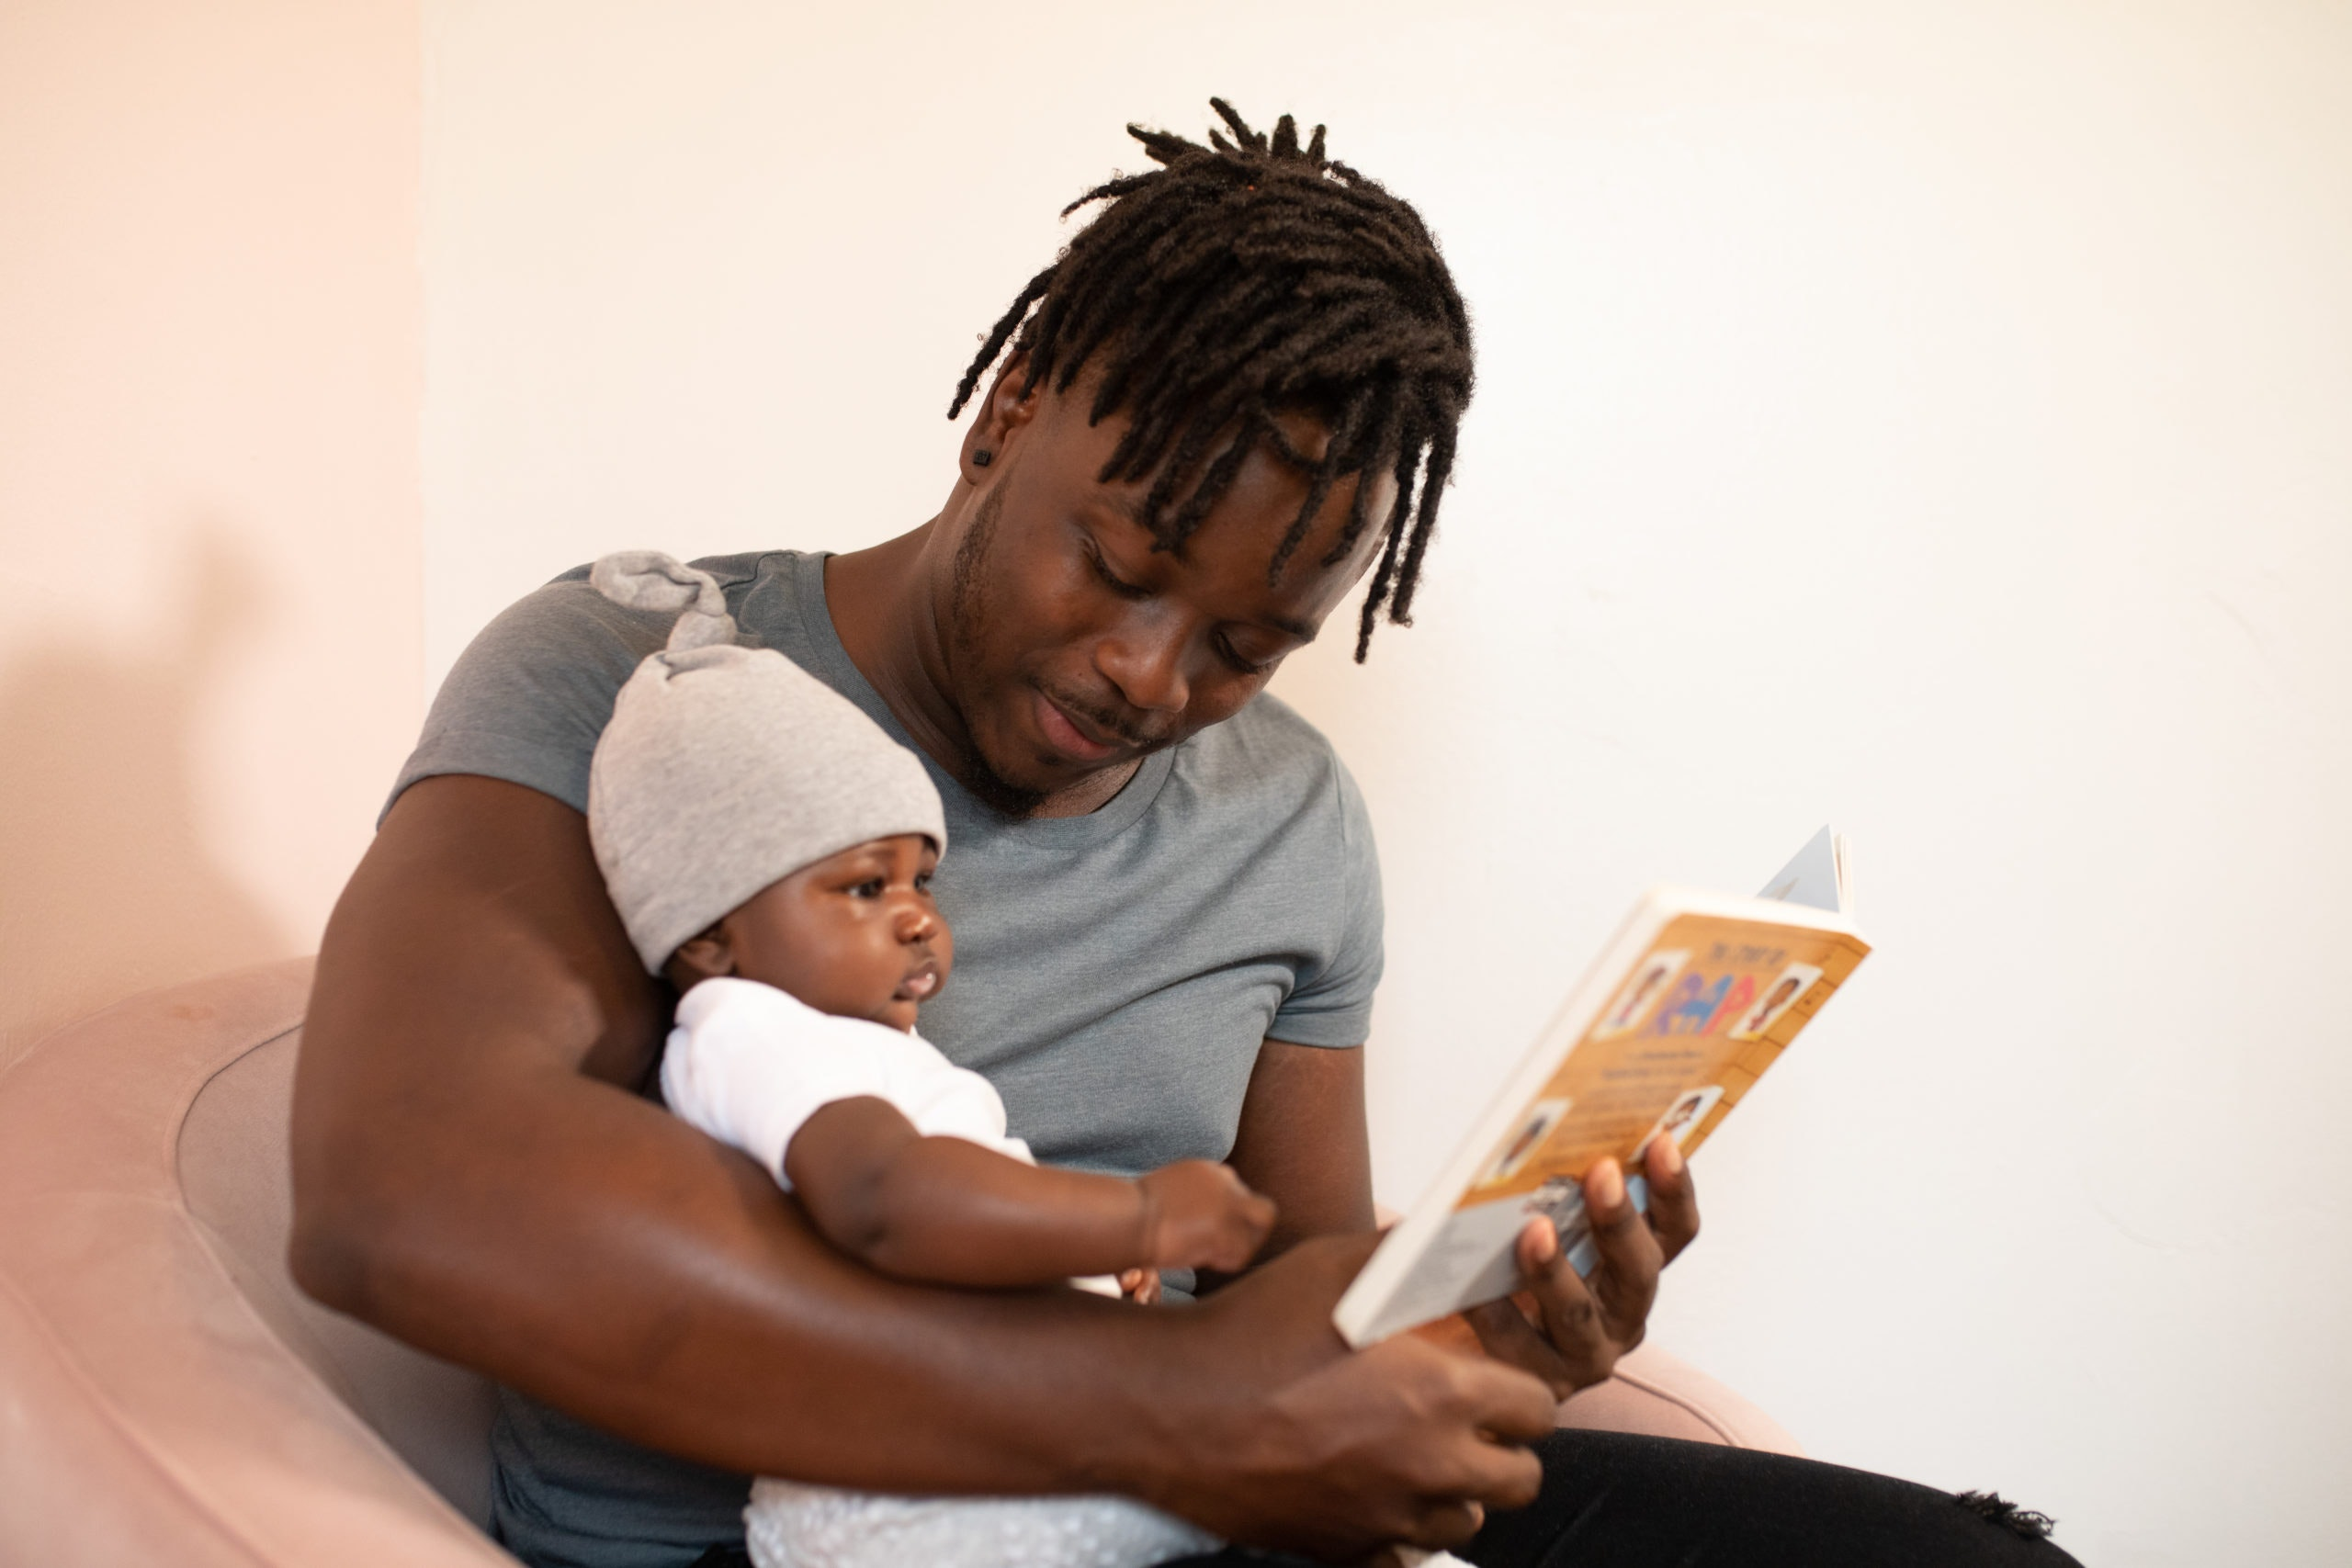 Man sitting in a chair reading to a baby sitting on his lap. (Photo by nappy from Pexels)